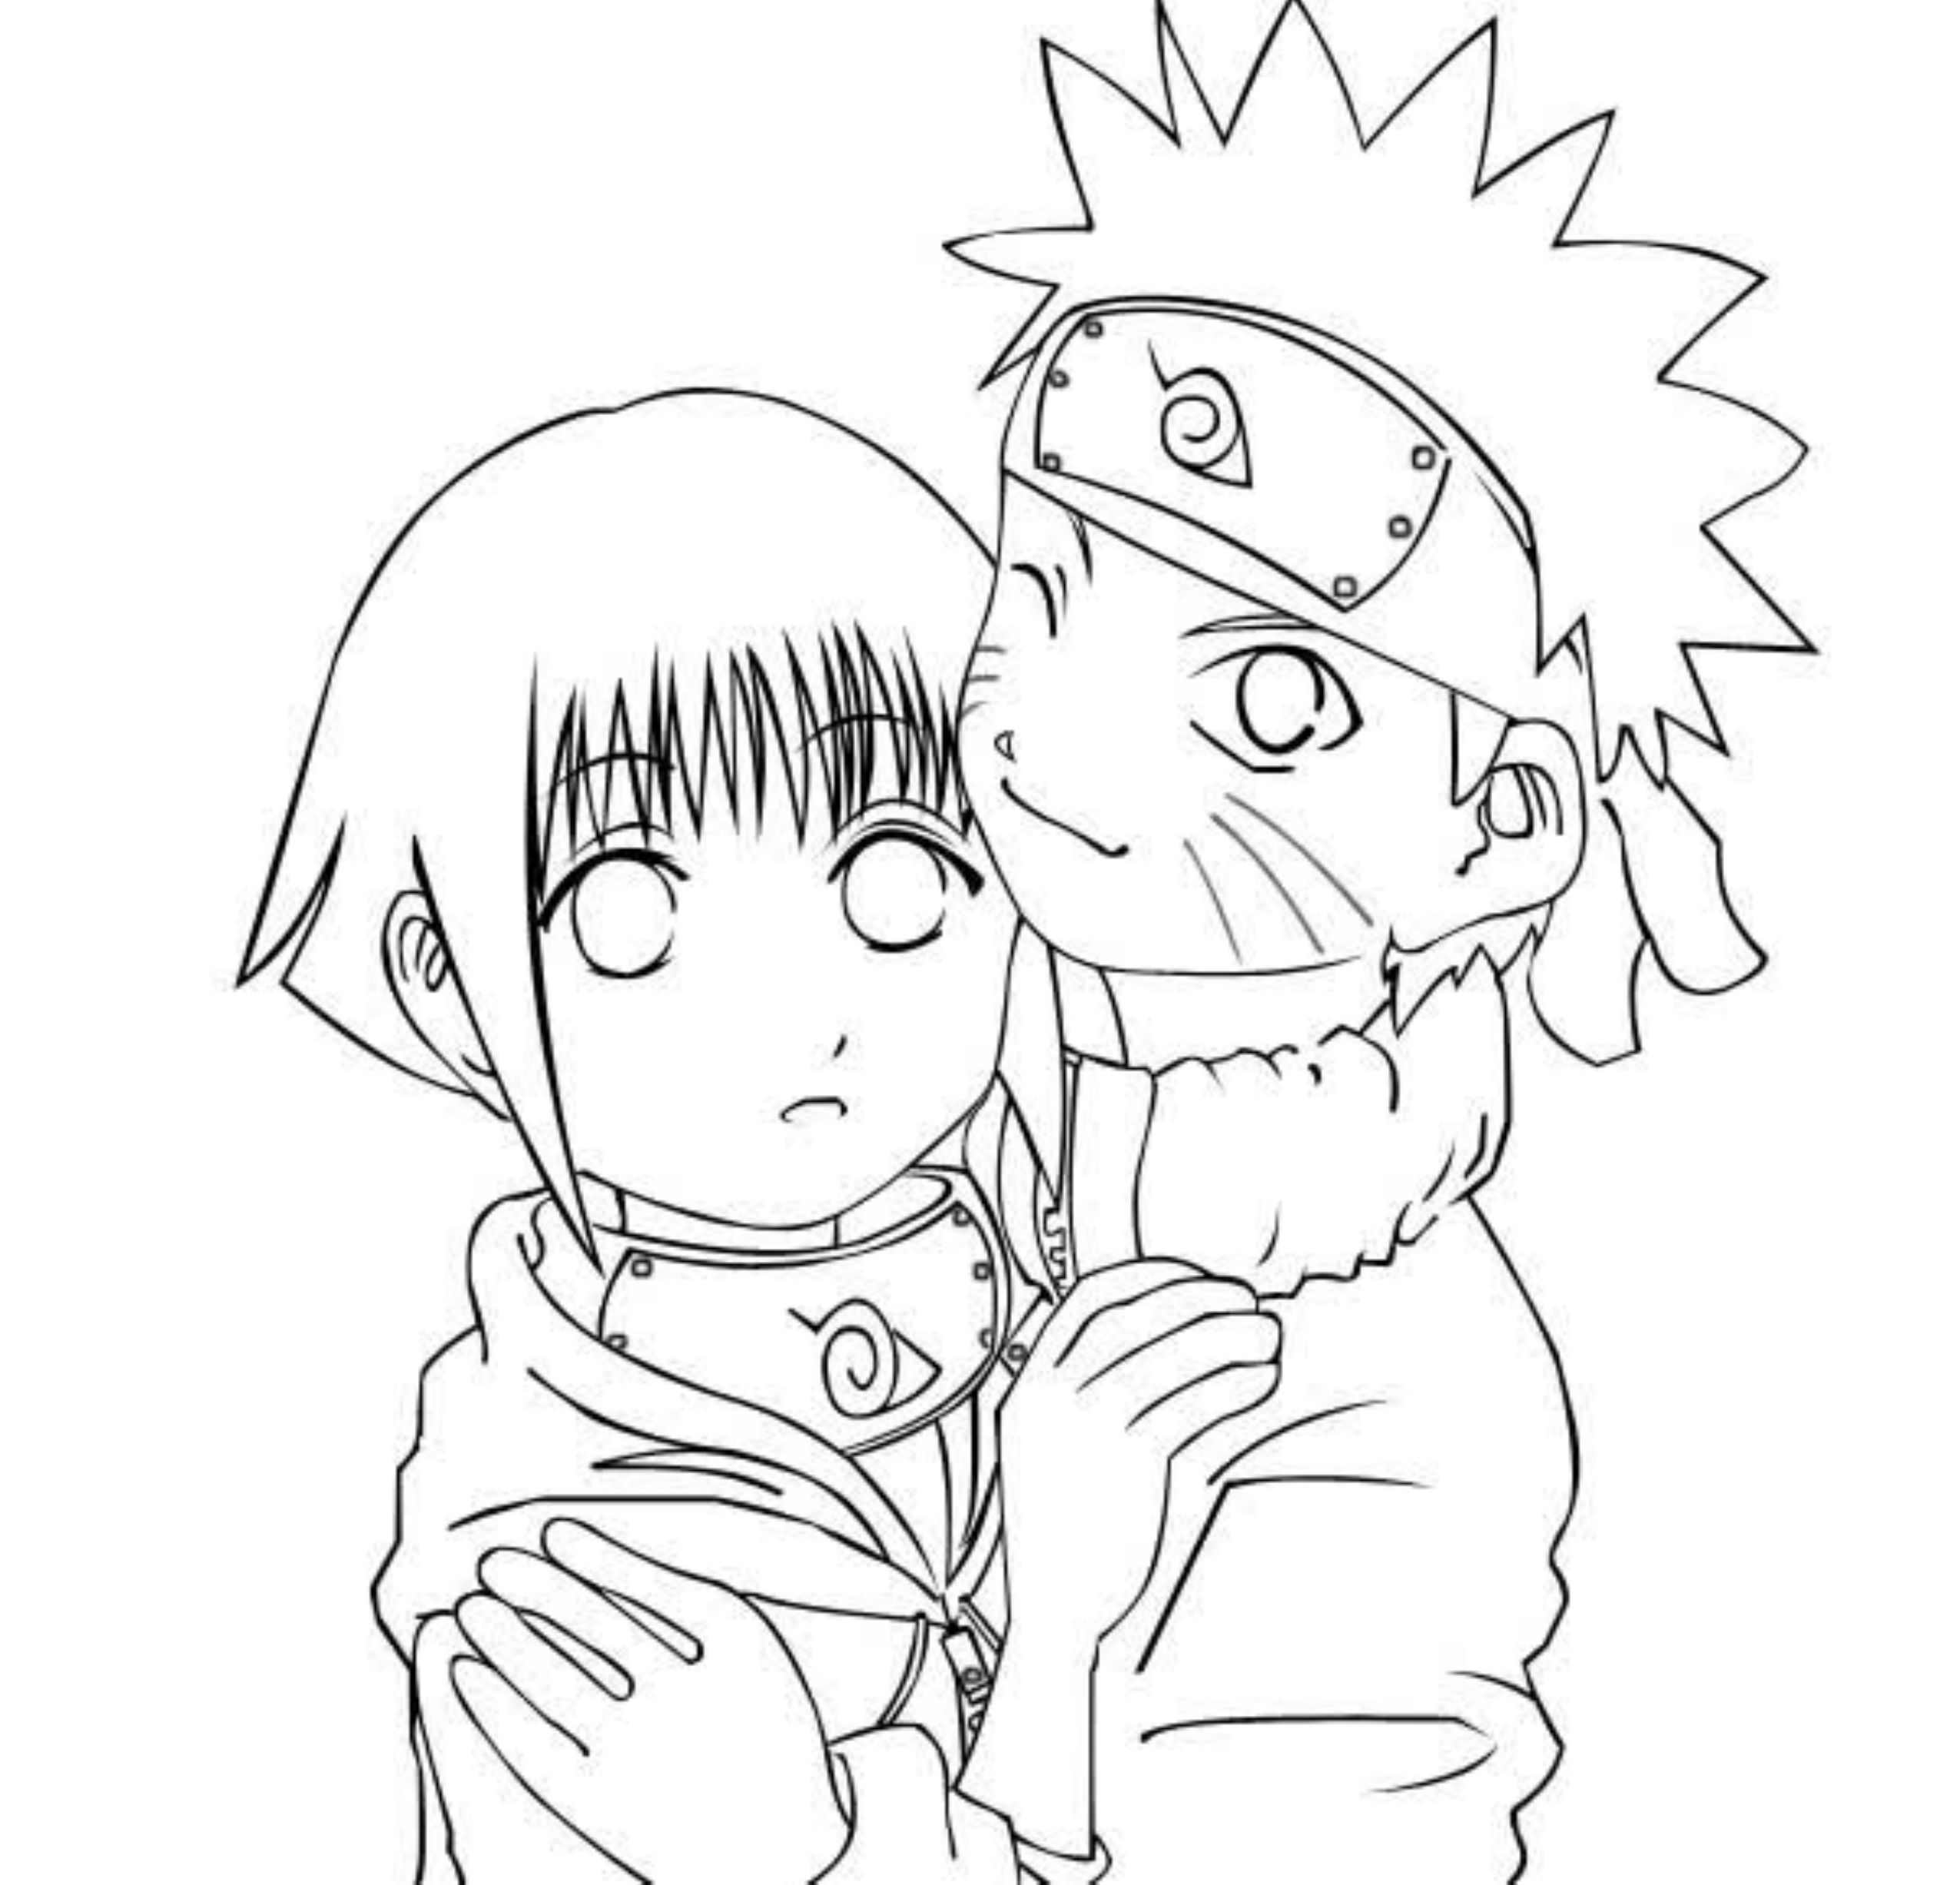 naruto coloring pages to print - naruto coloring pages to print coloring home